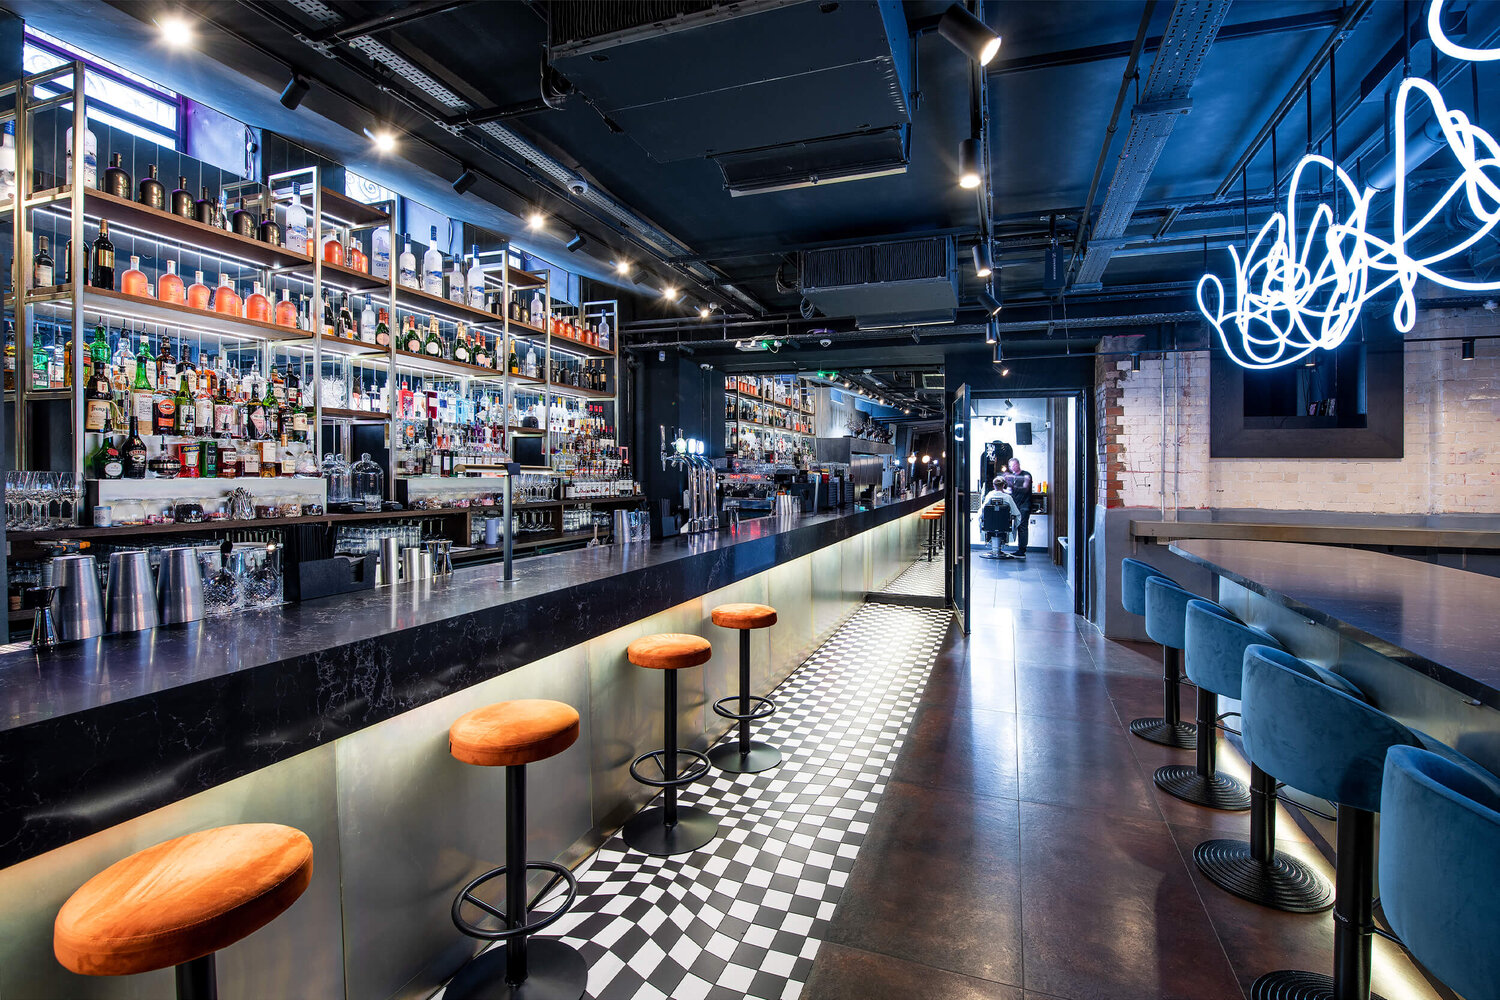 One Eight Six, one of Manchester's coolest live music bars, is taking bookings again, The Manc